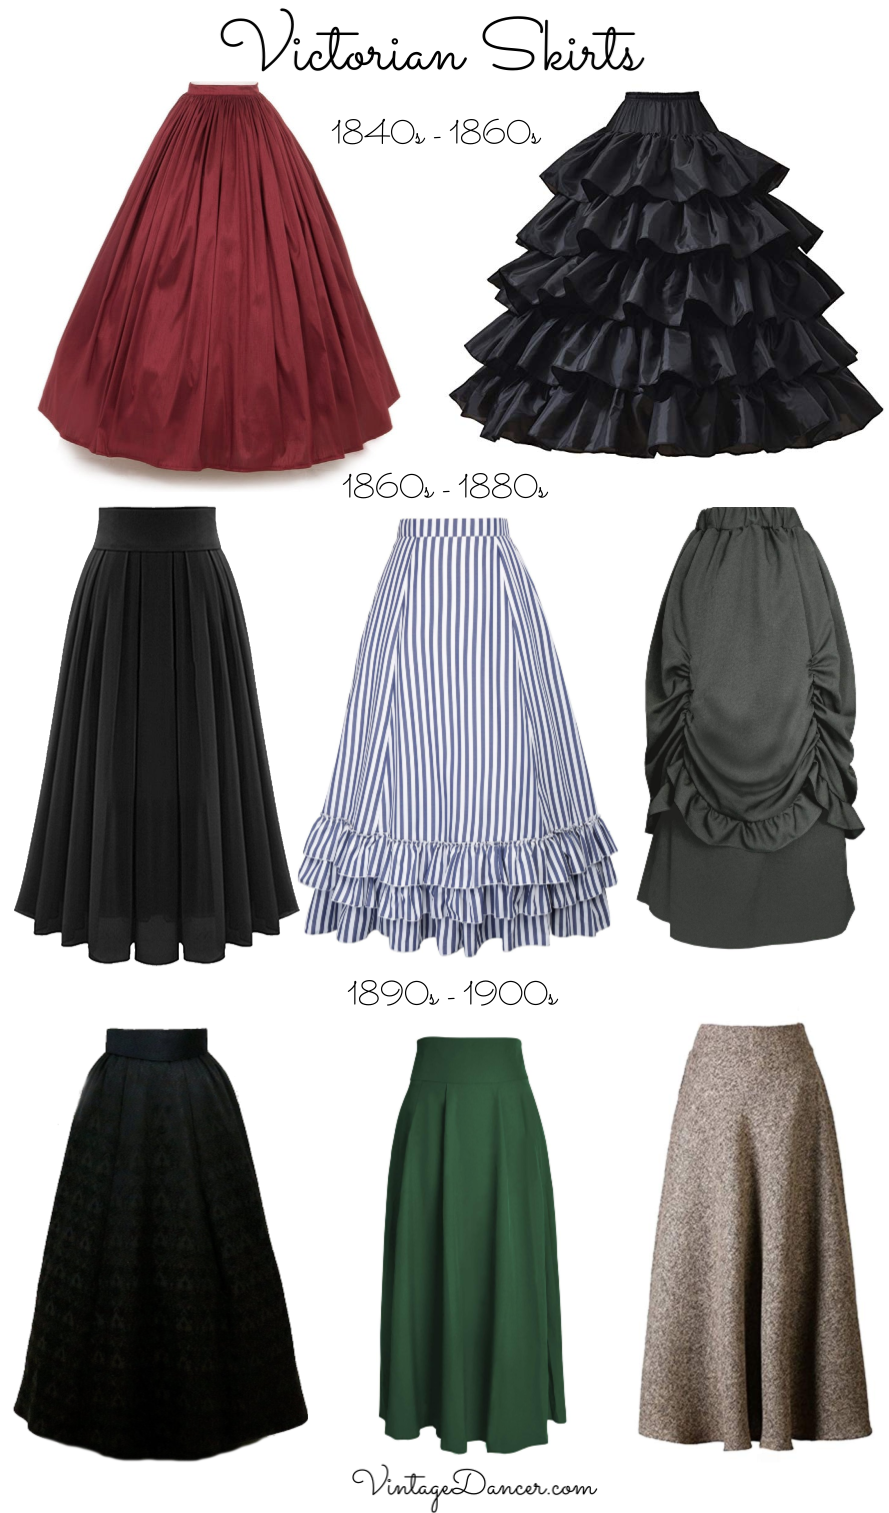 Photo of Make an Easy Victorian Costume Dress with a Skirt and Blouse